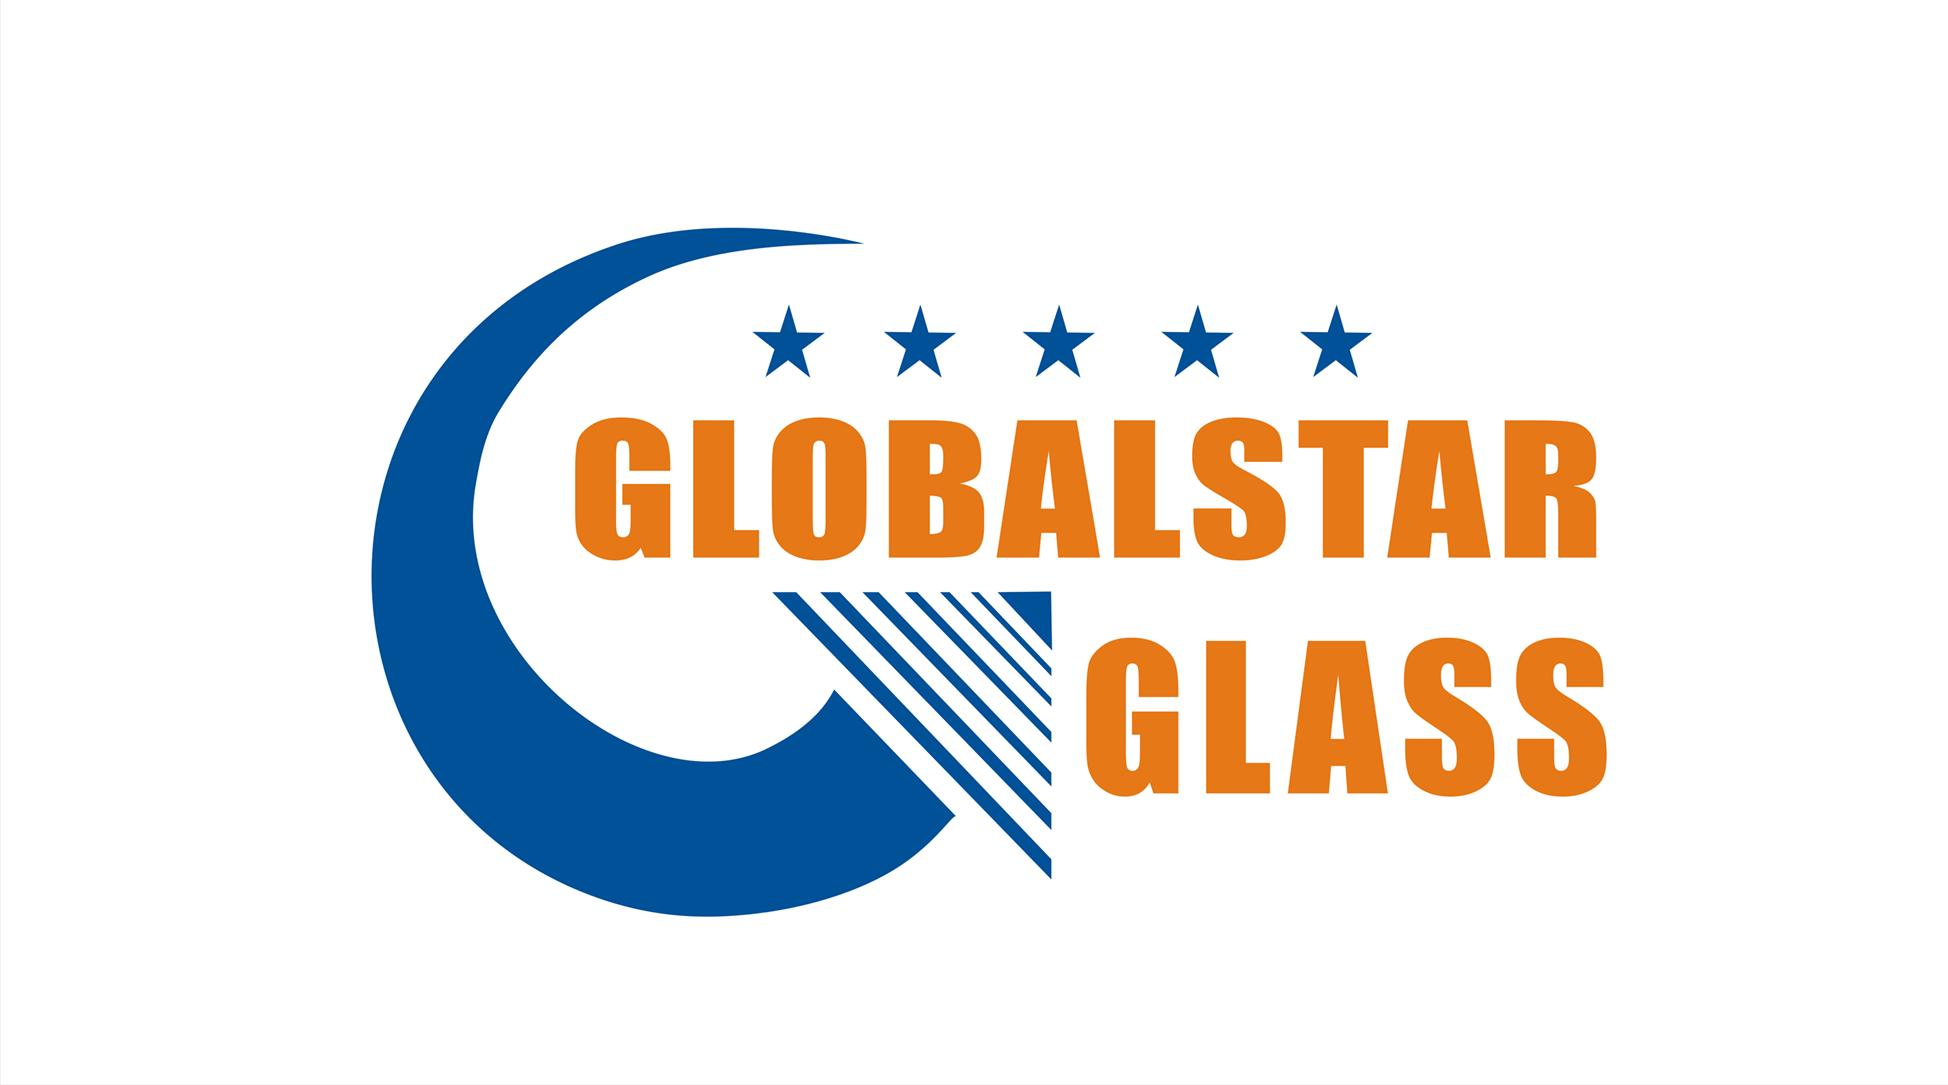 QINGDAO GLOBALSTAR GLASS TECHNOLOGY CO.,LTD